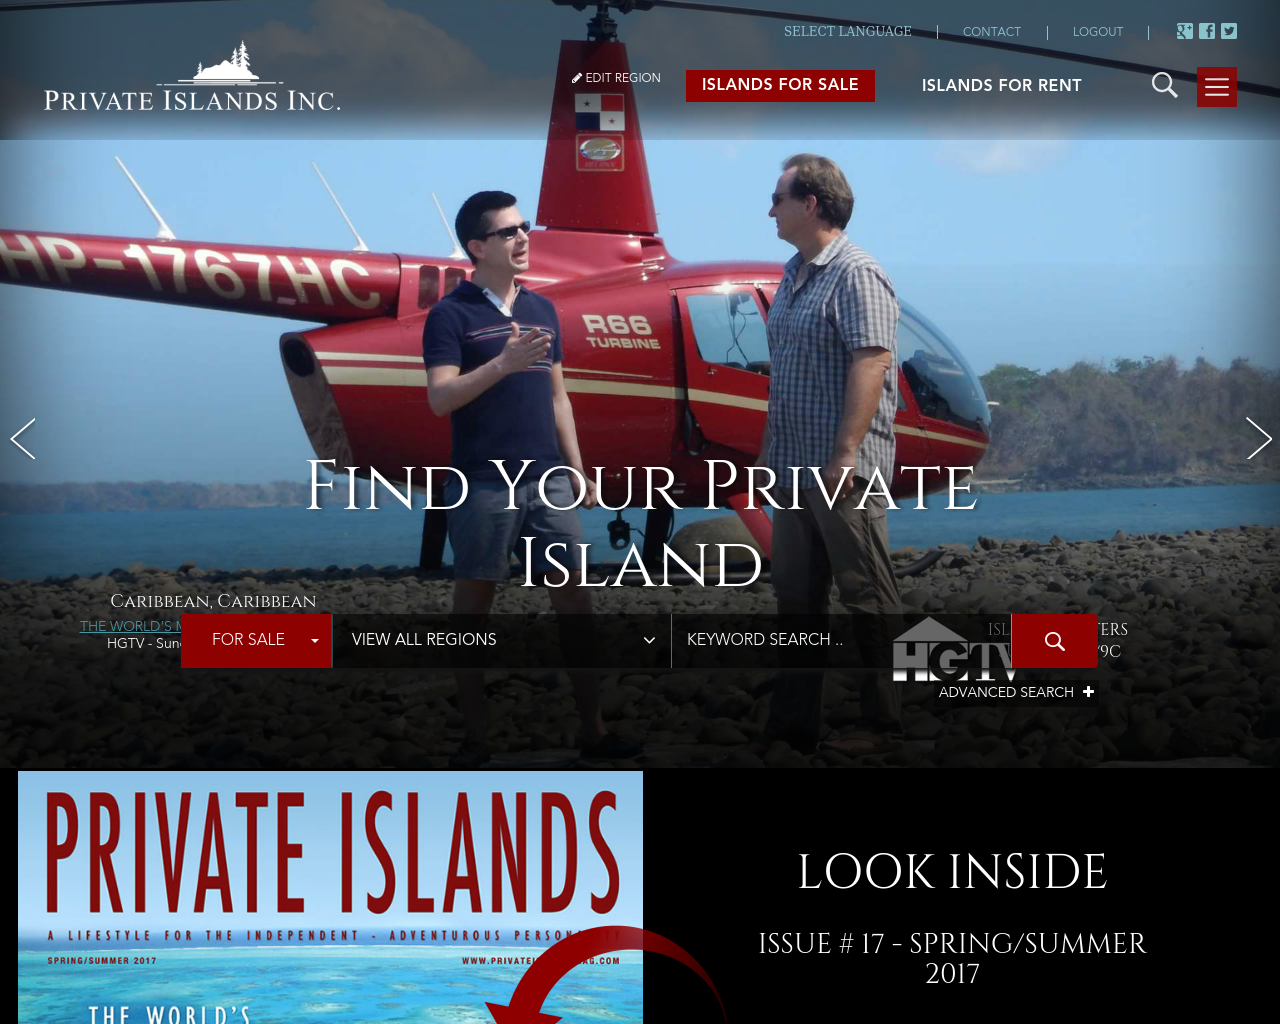 Private-Islands-Online-Advertising-Reviews-Pricing